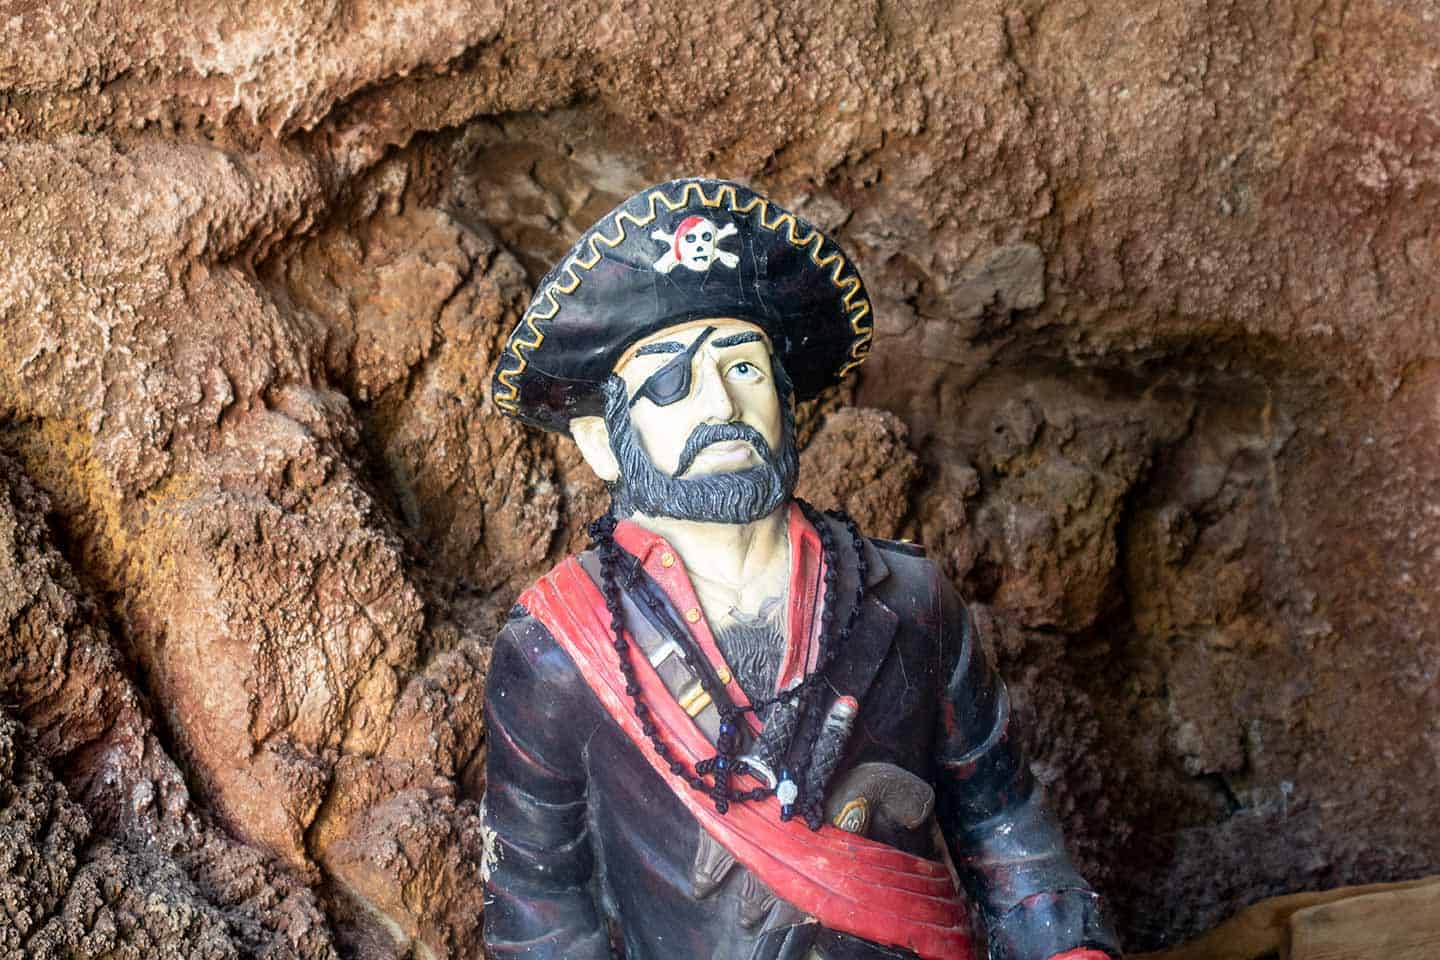 Image of the pirate sculpture in the cave at Kalypso Beach Crete